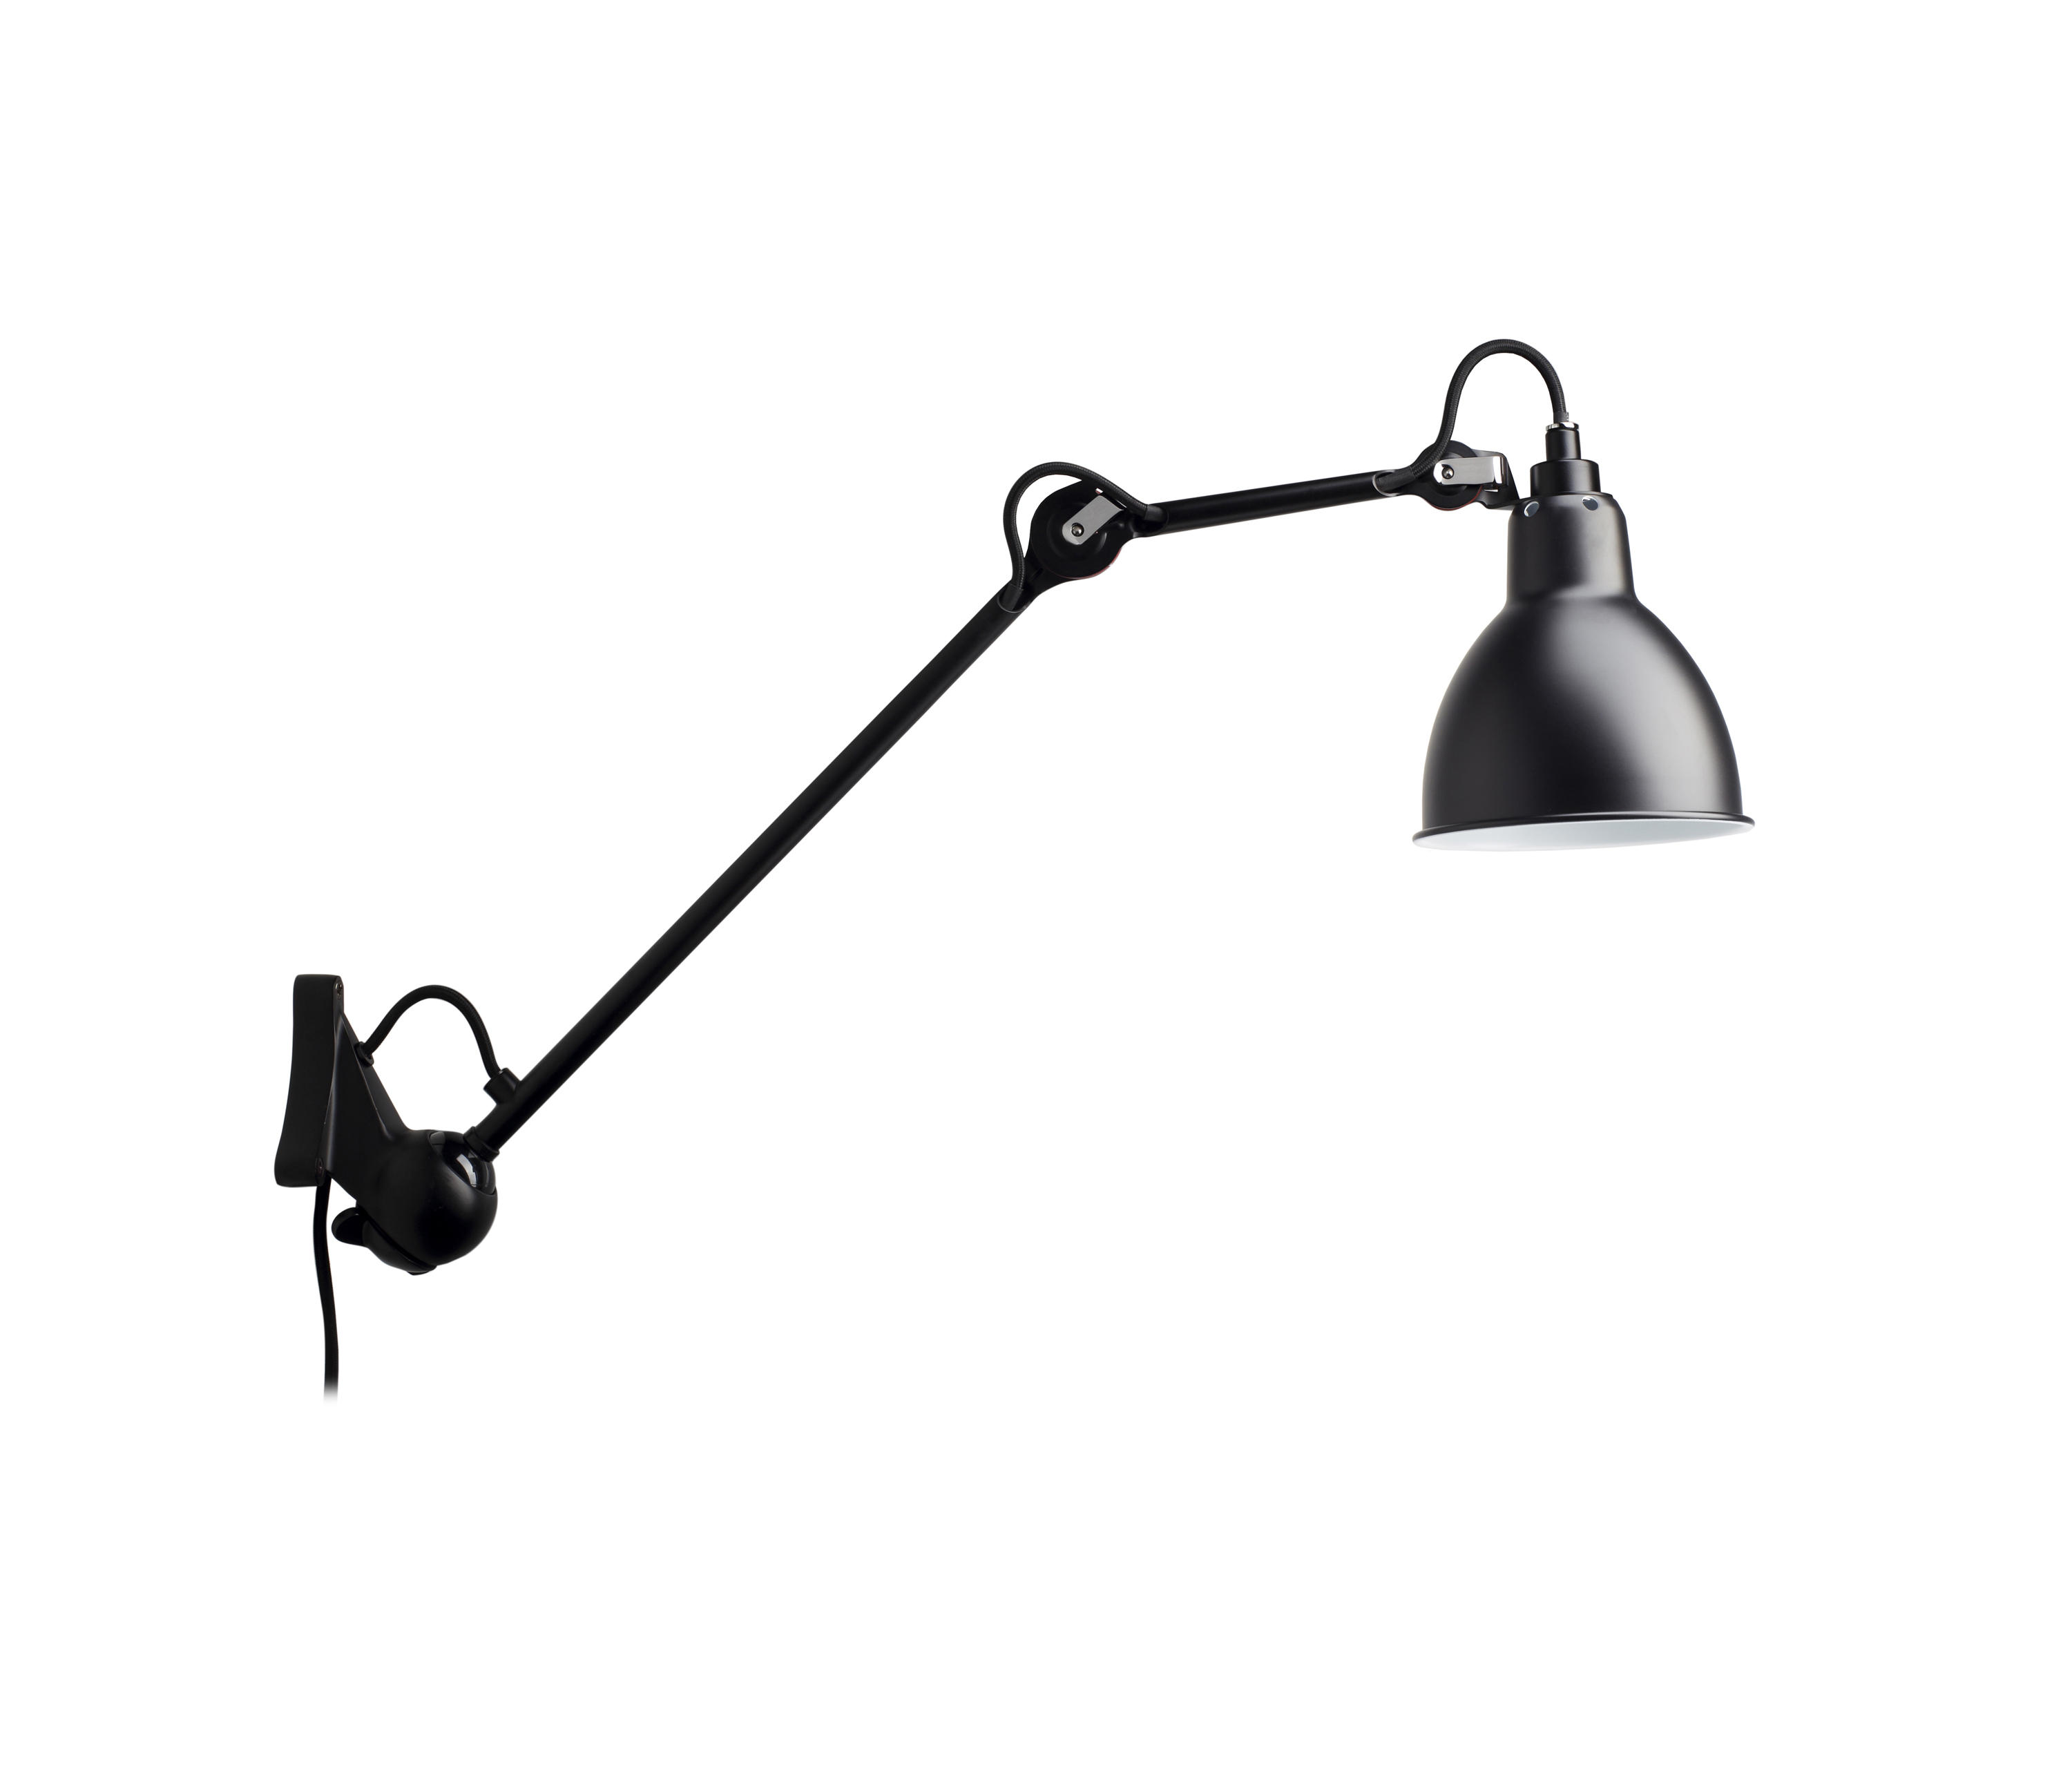 lampe gras n 222 black general lighting from dcw ditions architonic. Black Bedroom Furniture Sets. Home Design Ideas